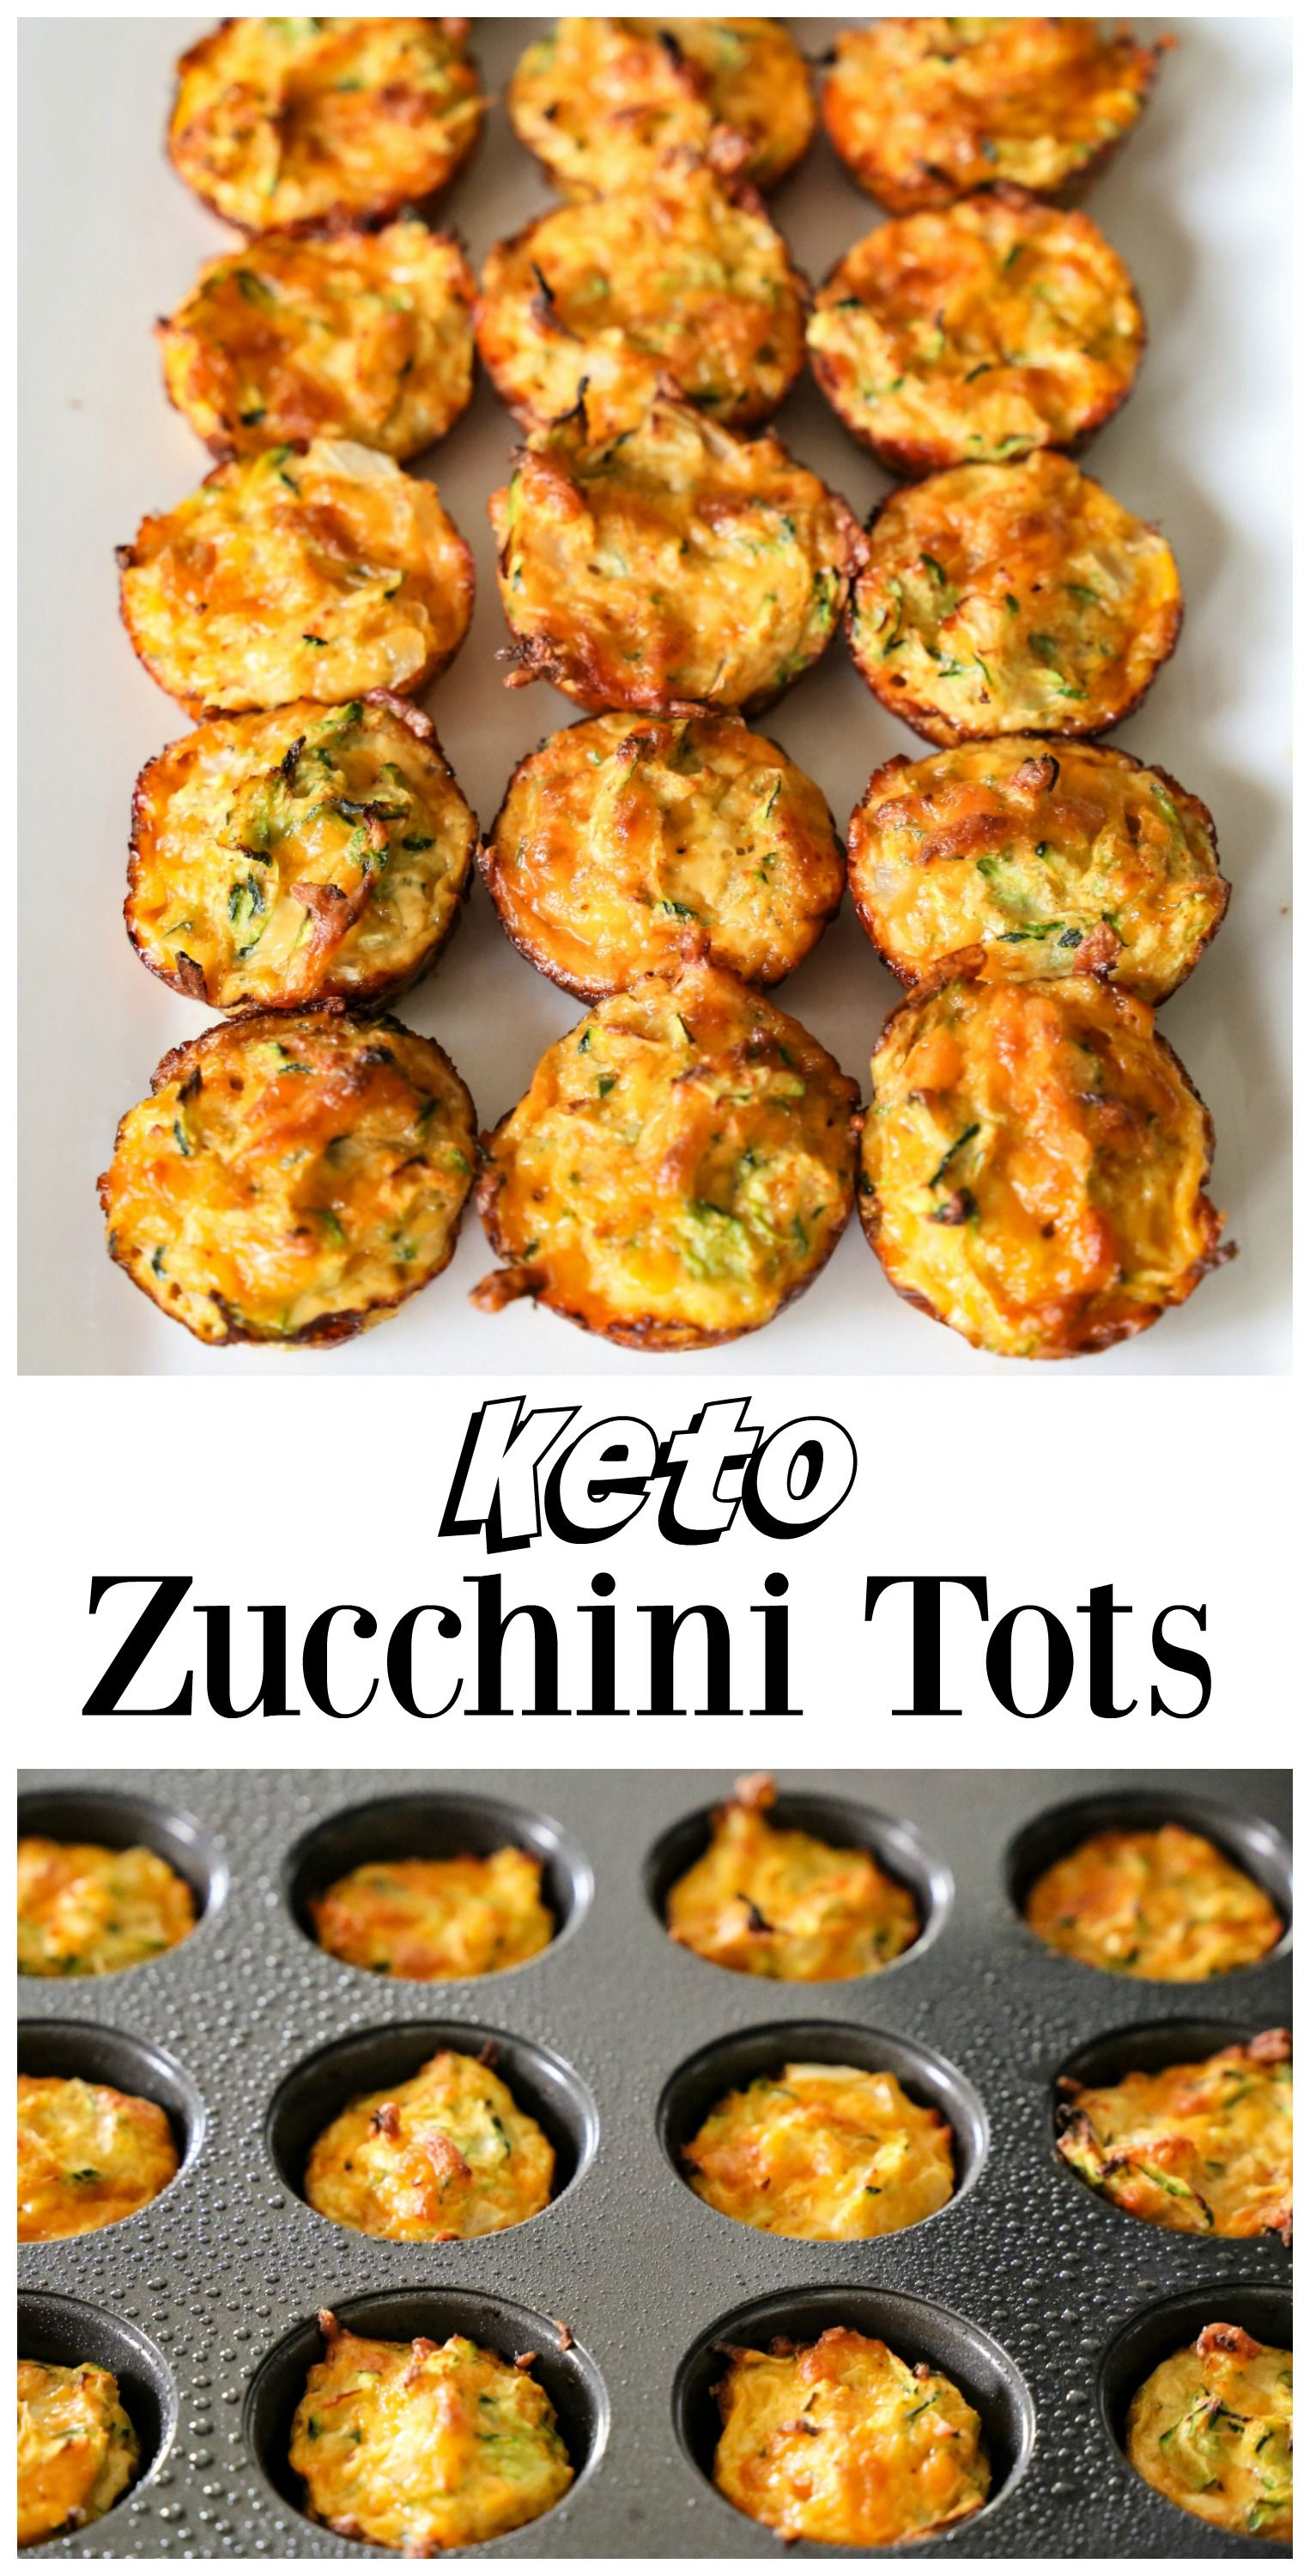 Zucchini Tots | Recipe | Keto and Low Carb Recipes | Ketogenic cookbook, Keto, Keto snacks